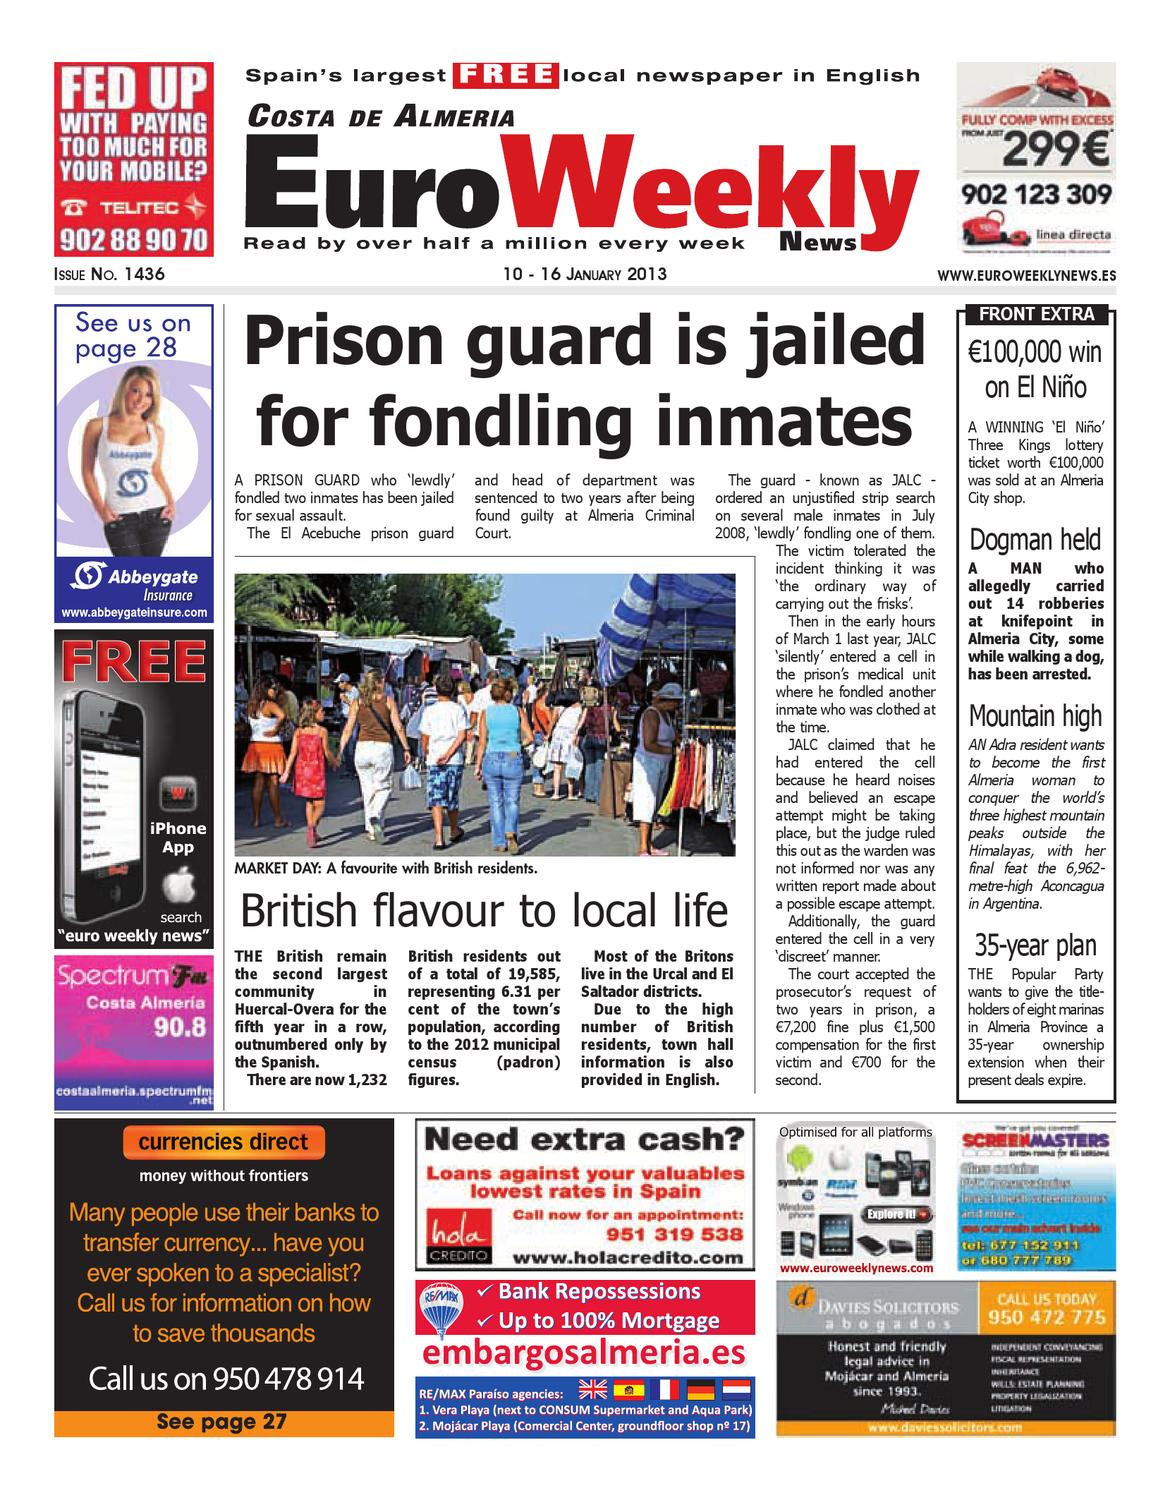 Costa de Almeria 10 - 16 January 2013 Issue 1436 by Euro Weekly News Media  S.A. - issuu a9a0853843384